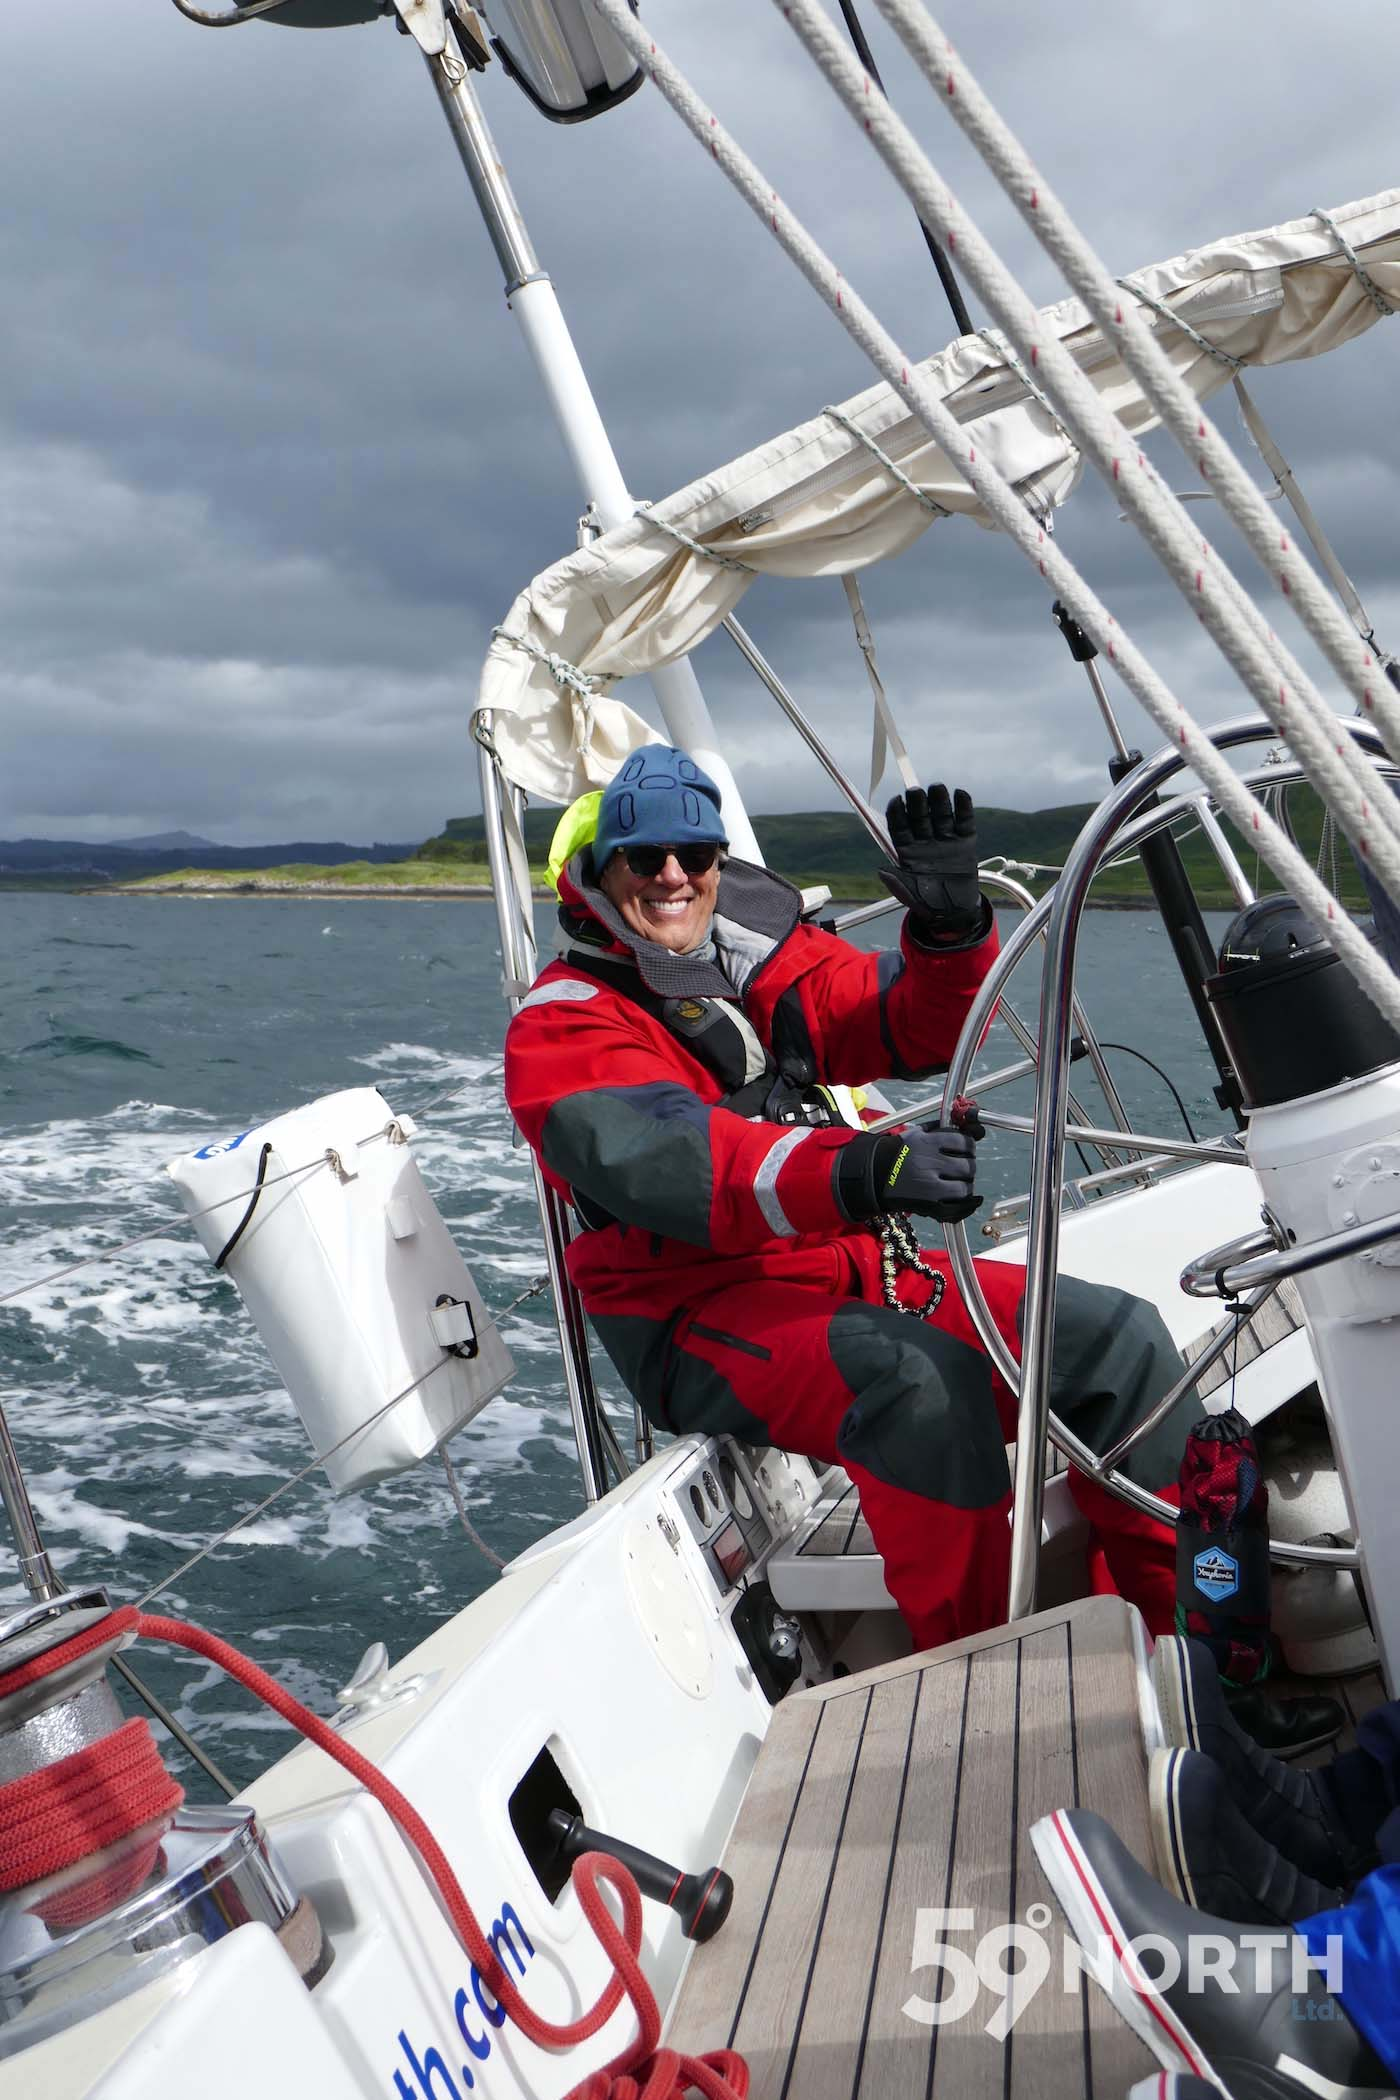 Karl at the helm sailing out of Oban. Leg 8, 2017: Sweden to Scotland 59-north.com